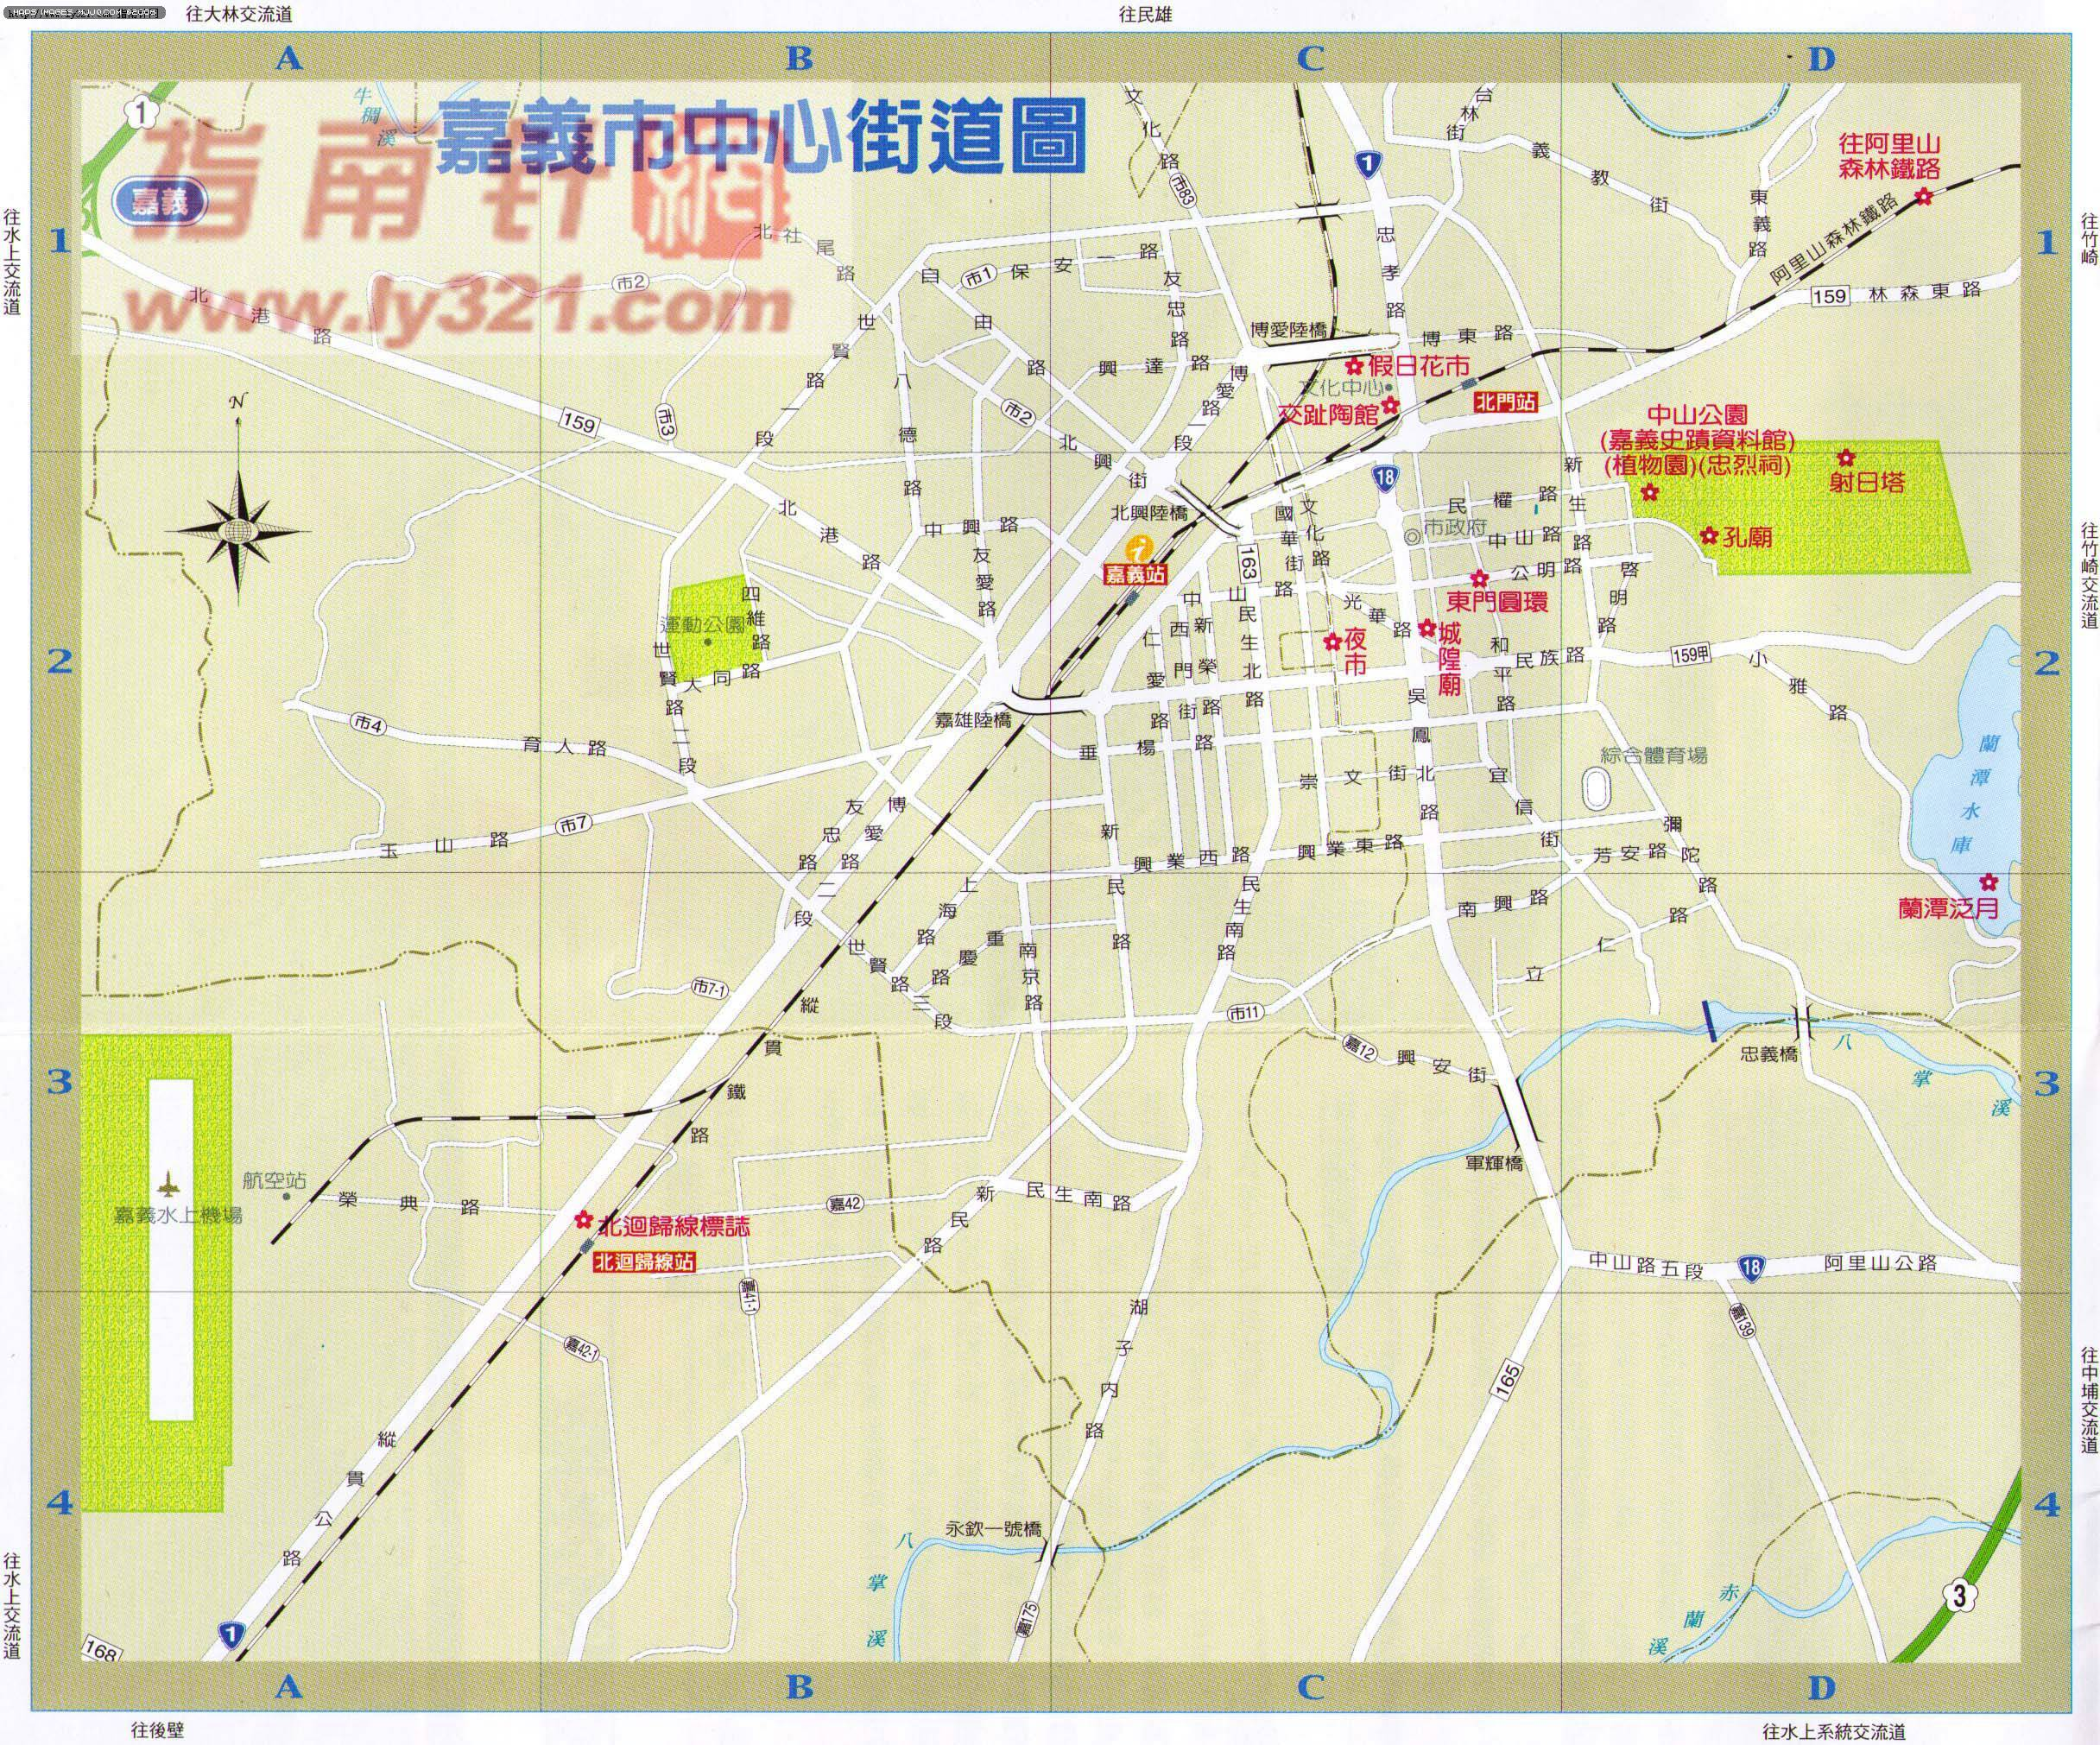 Macau Map together with 6369 furthermore 5 Best Places Learn Mandarin China 2 together with Taiwan as well A Primer On The  plicated Battle For The South China Sea. on taiwan map in chinese